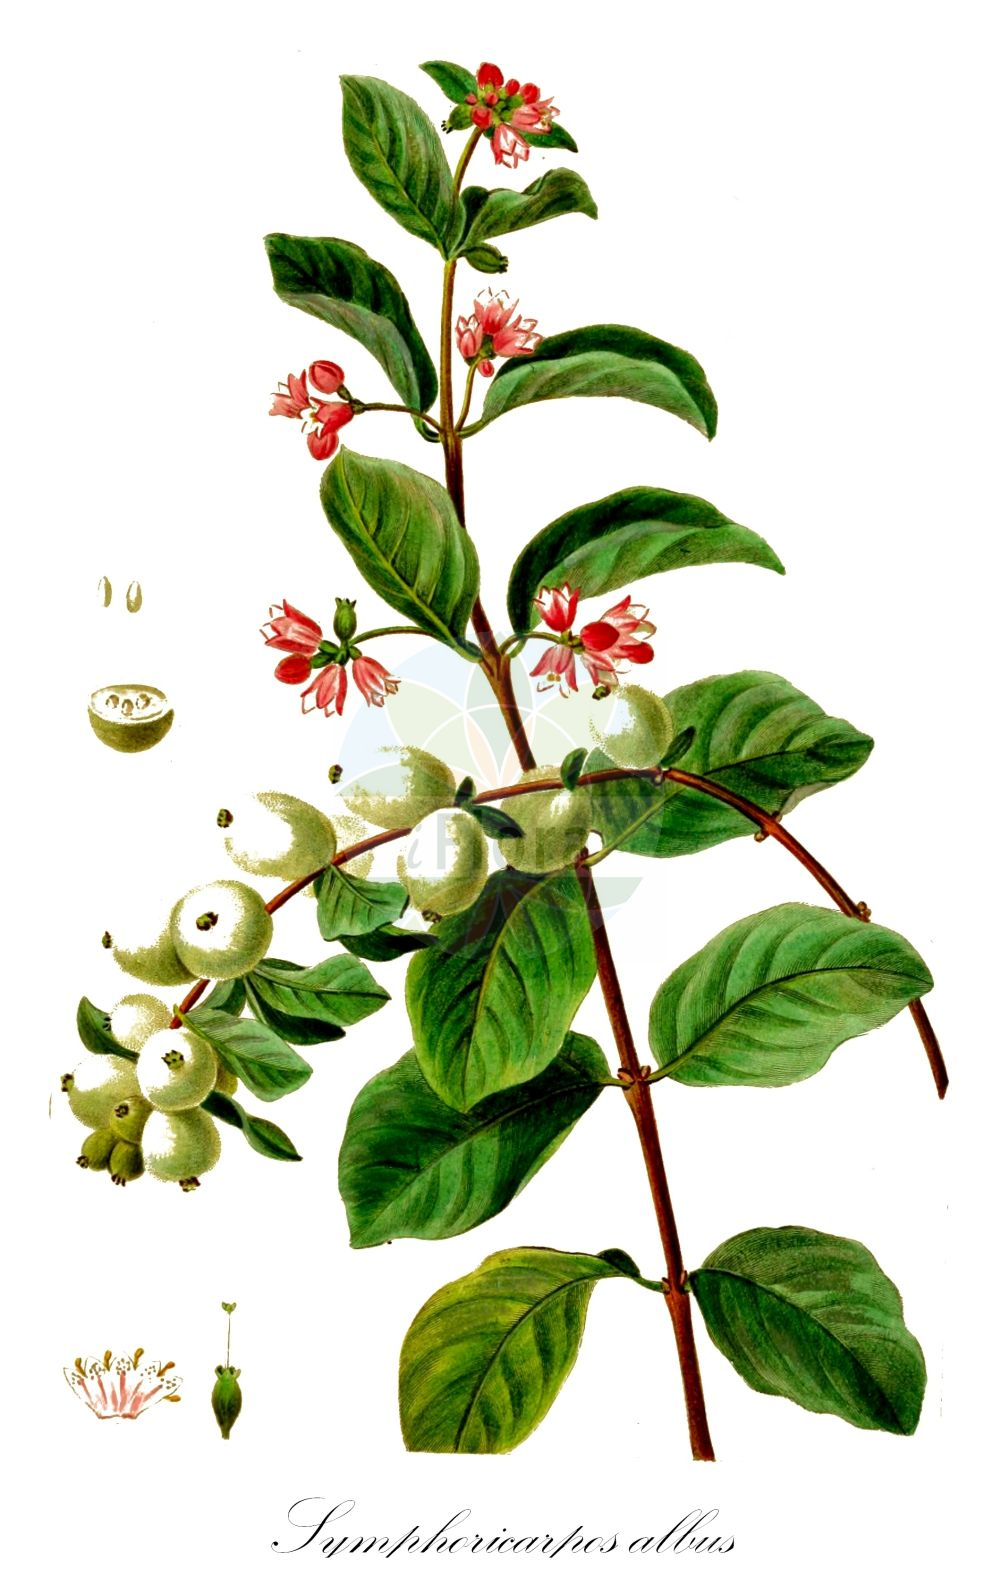 Historische Abbildung von Symphoricarpos albus (Gewoehnliche Schneebeere - Snowberry). Das Bild zeigt Blatt, Bluete, Frucht und Same. ---- Historical Drawing of Symphoricarpos albus (Gewoehnliche Schneebeere - Snowberry).The image is showing leaf, flower, fruit and seed.(Symphoricarpos albus,Gewoehnliche Schneebeere,Snowberry,Symphoricarpos racemosus,Symphoricarpos rivularis,Vaccinium album,Knackbeere,Knallerbse,Common ,Symphoricarpos,Schneebeere,Snowberry,Caprifoliaceae,Geissblattgewaechse,Honeysuckle family,Blatt,Bluete,Frucht,Same,leaf,flower,fruit,seed,Bessa (1772-1835))